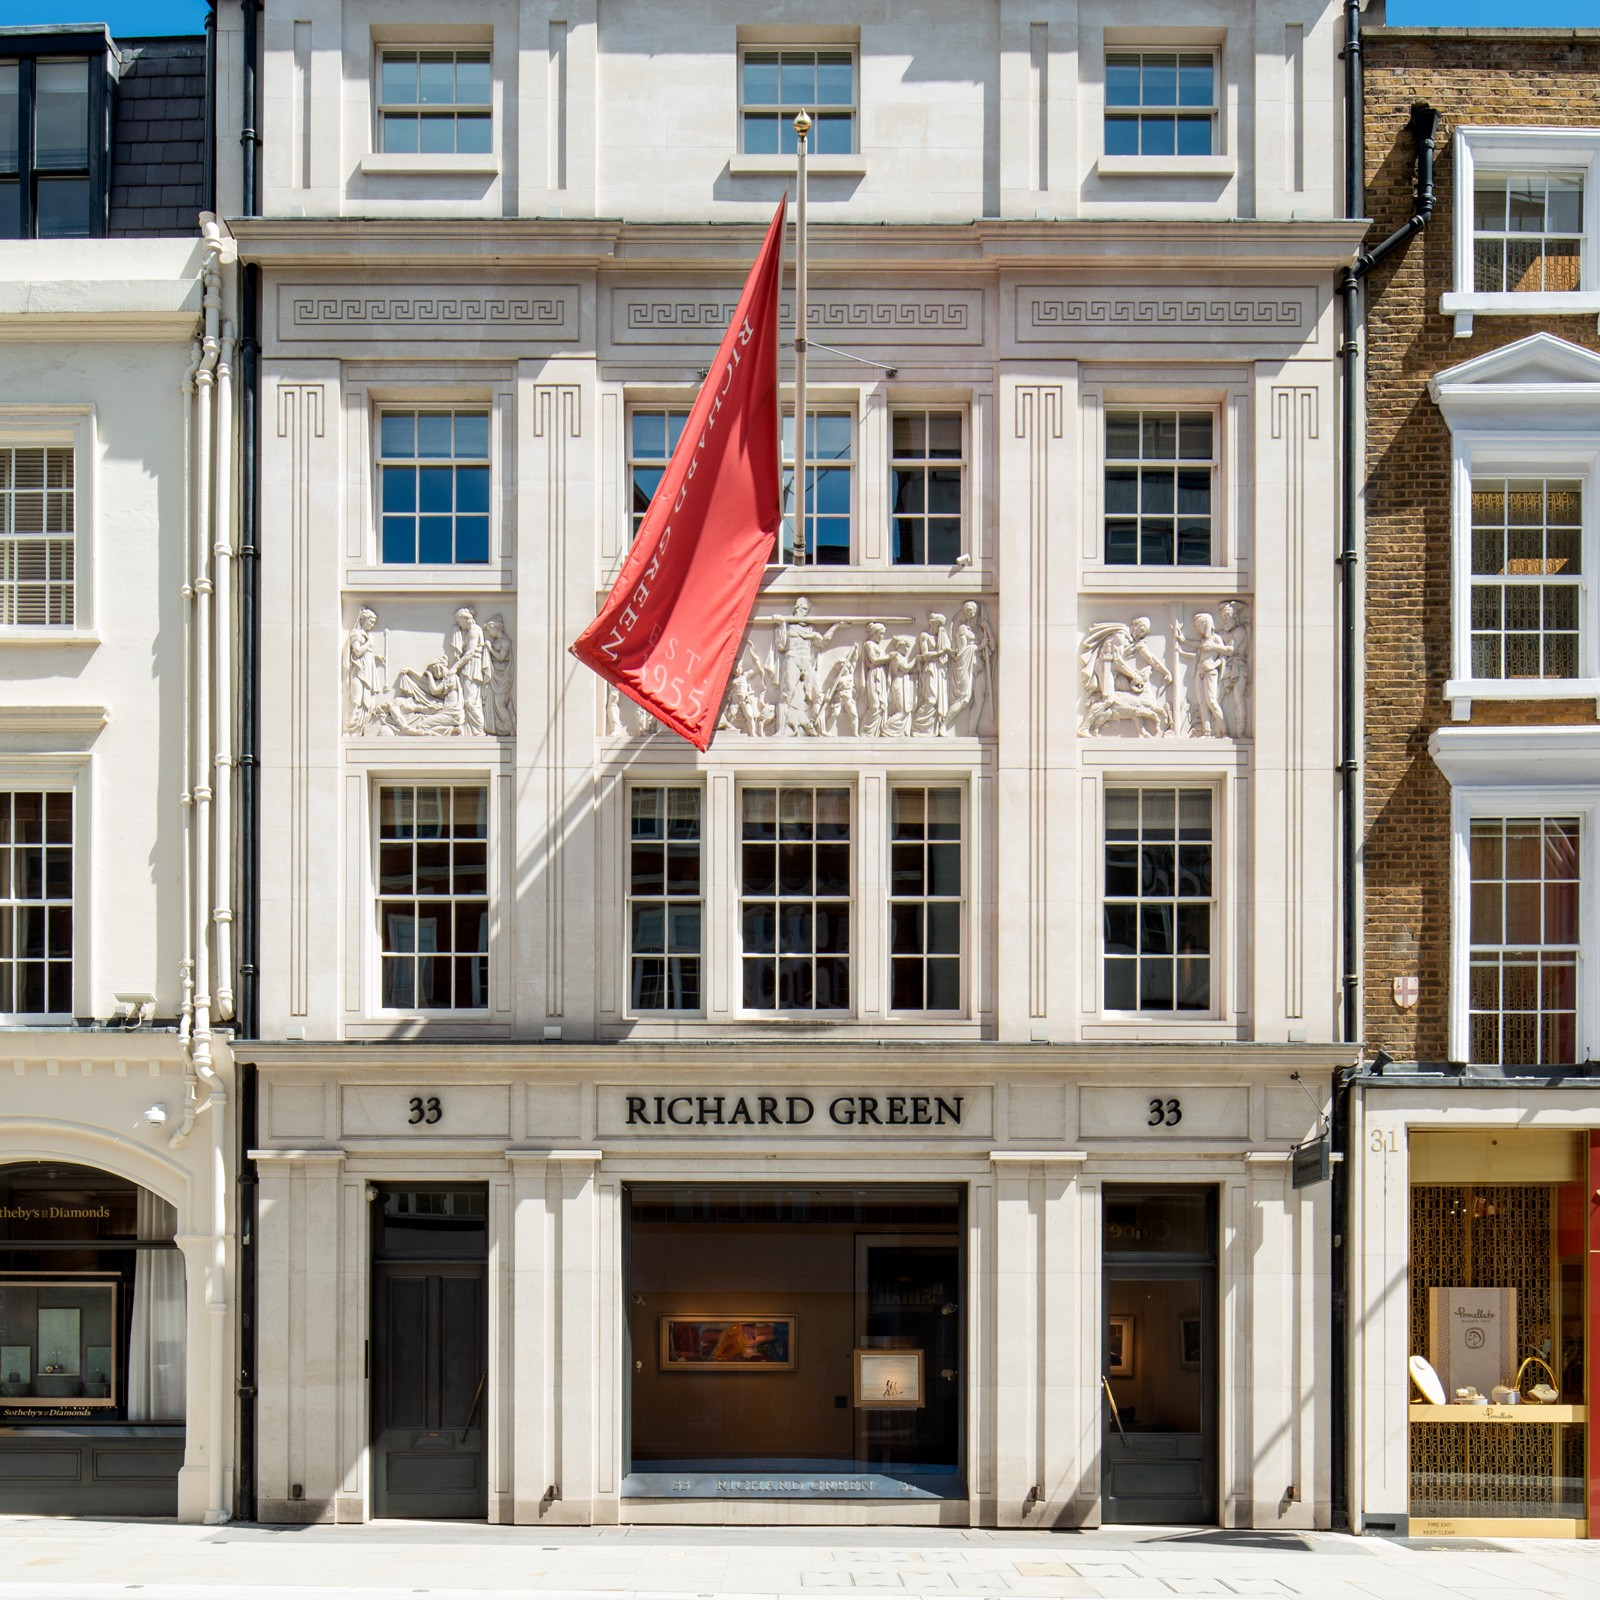 33 New Bond Street, London